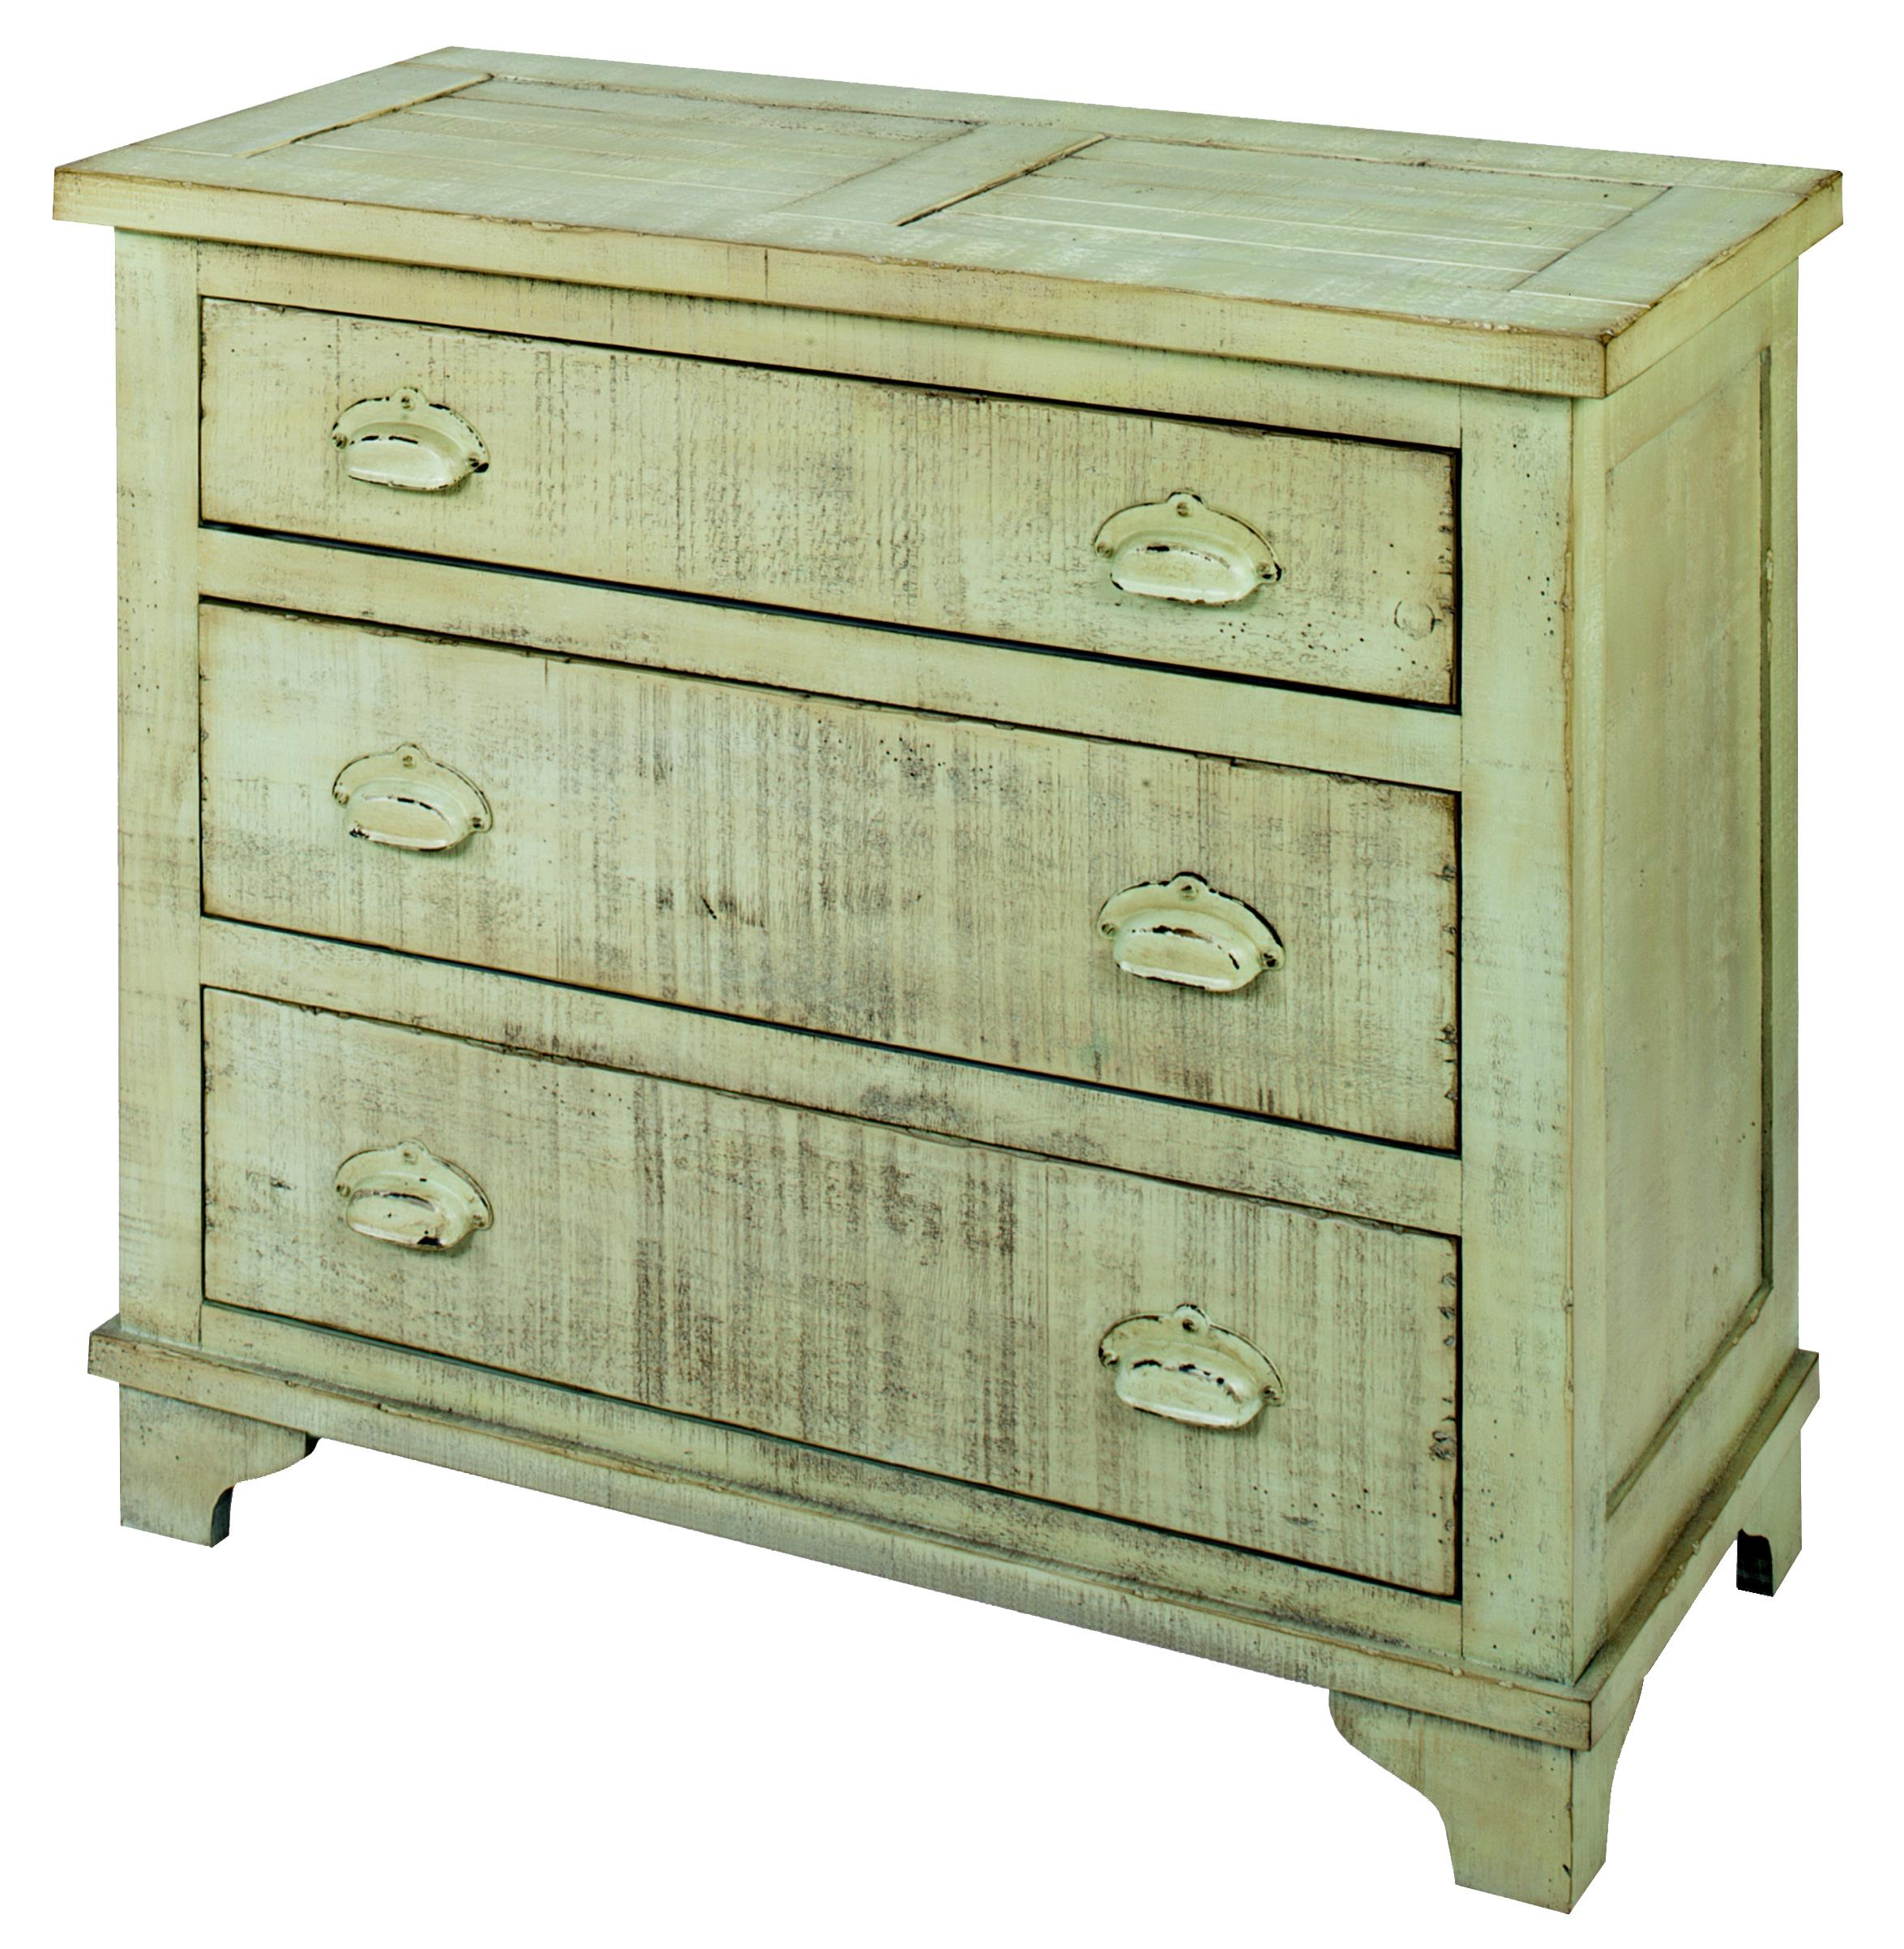 Progressive Furniture Camryn Industrial Chest - Mint Green - Item Number: A724-72G